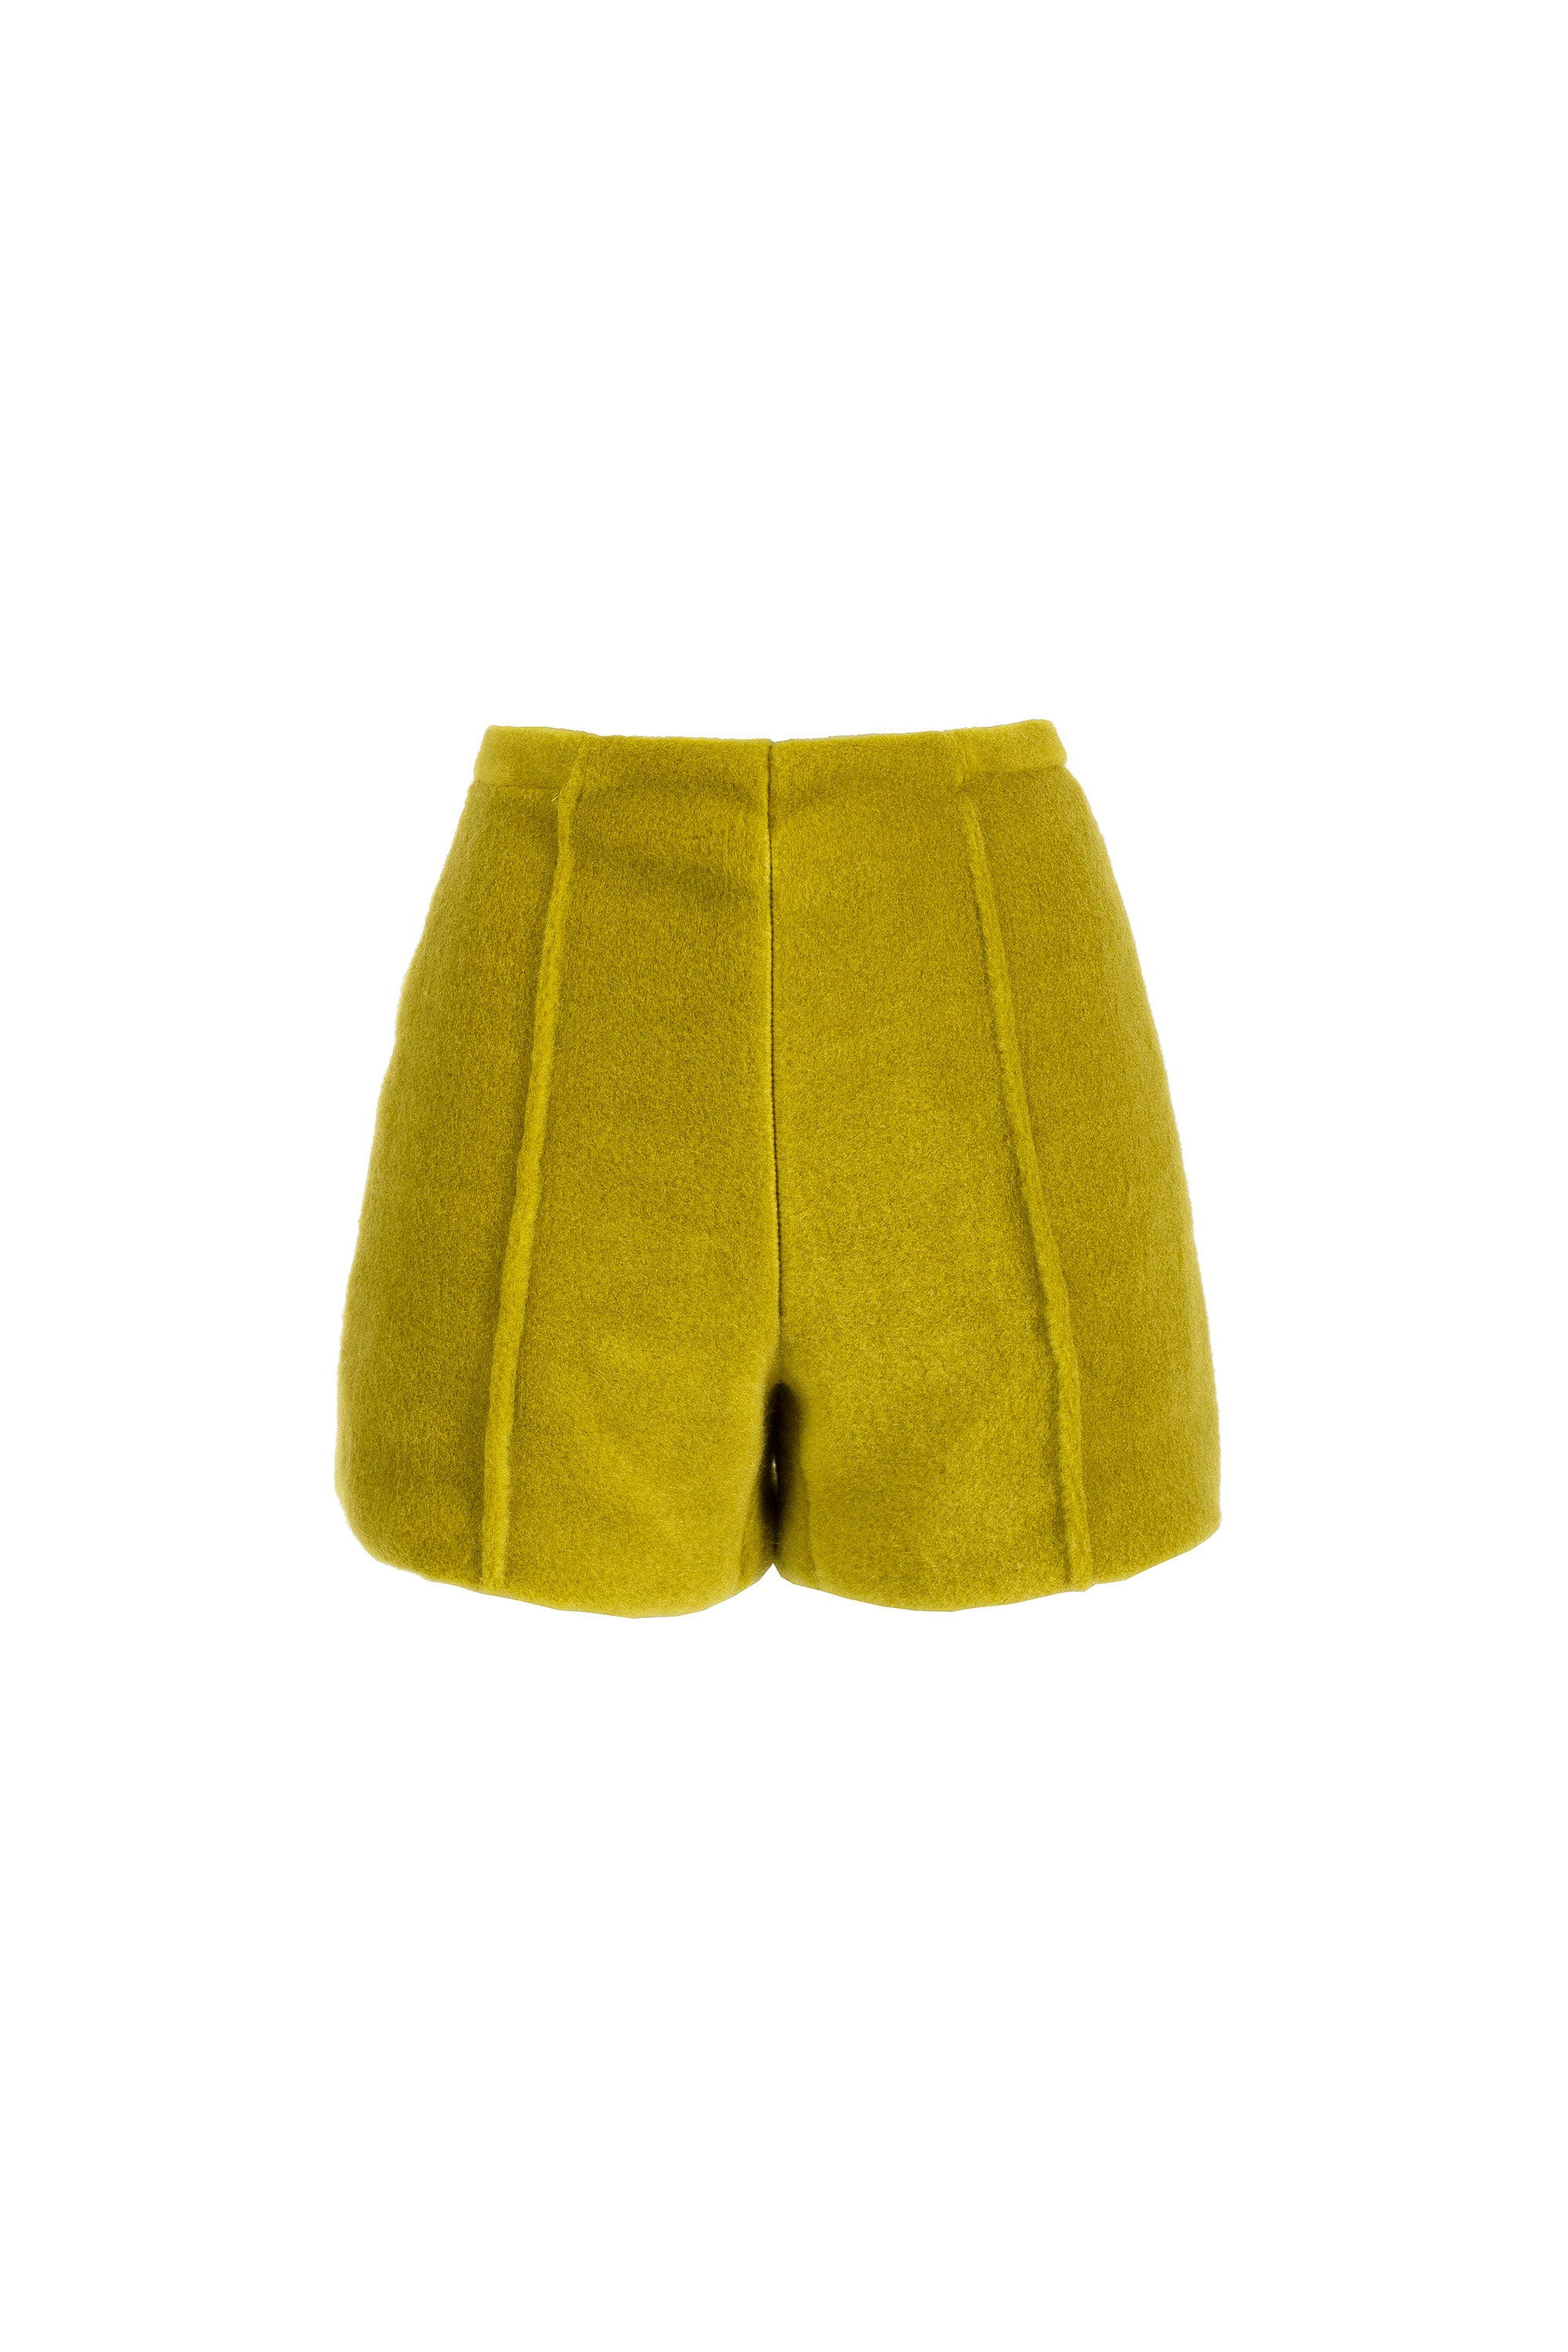 Surprise | pear green shorts [by Mafalda Patrício]